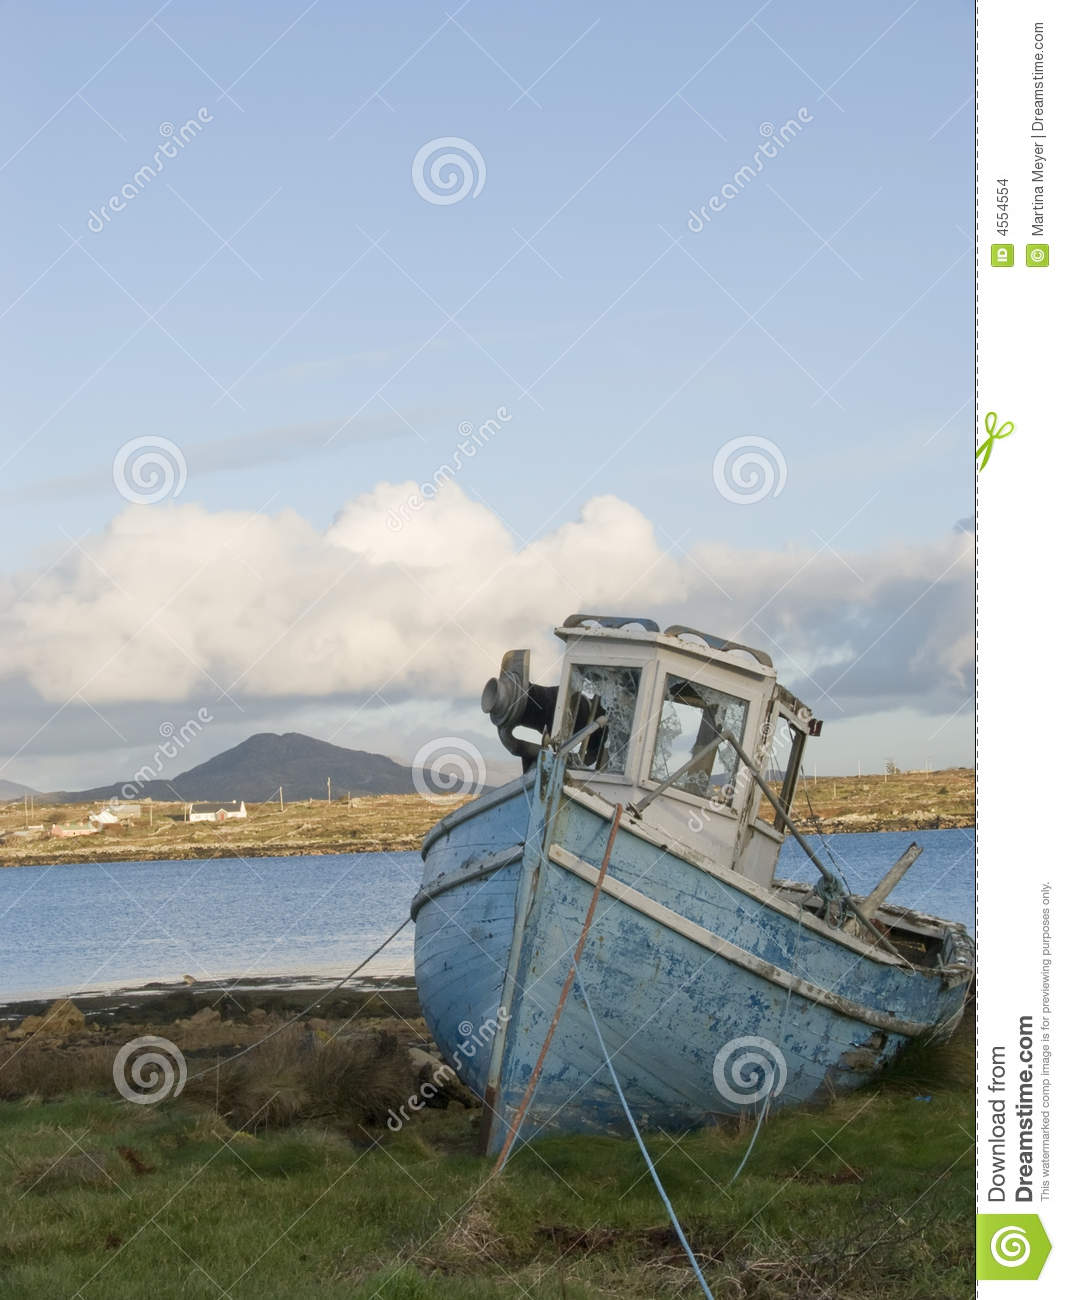 Old Fishing Boat In Ireland Stock Photo - Image of coast, cloudy: 4554554